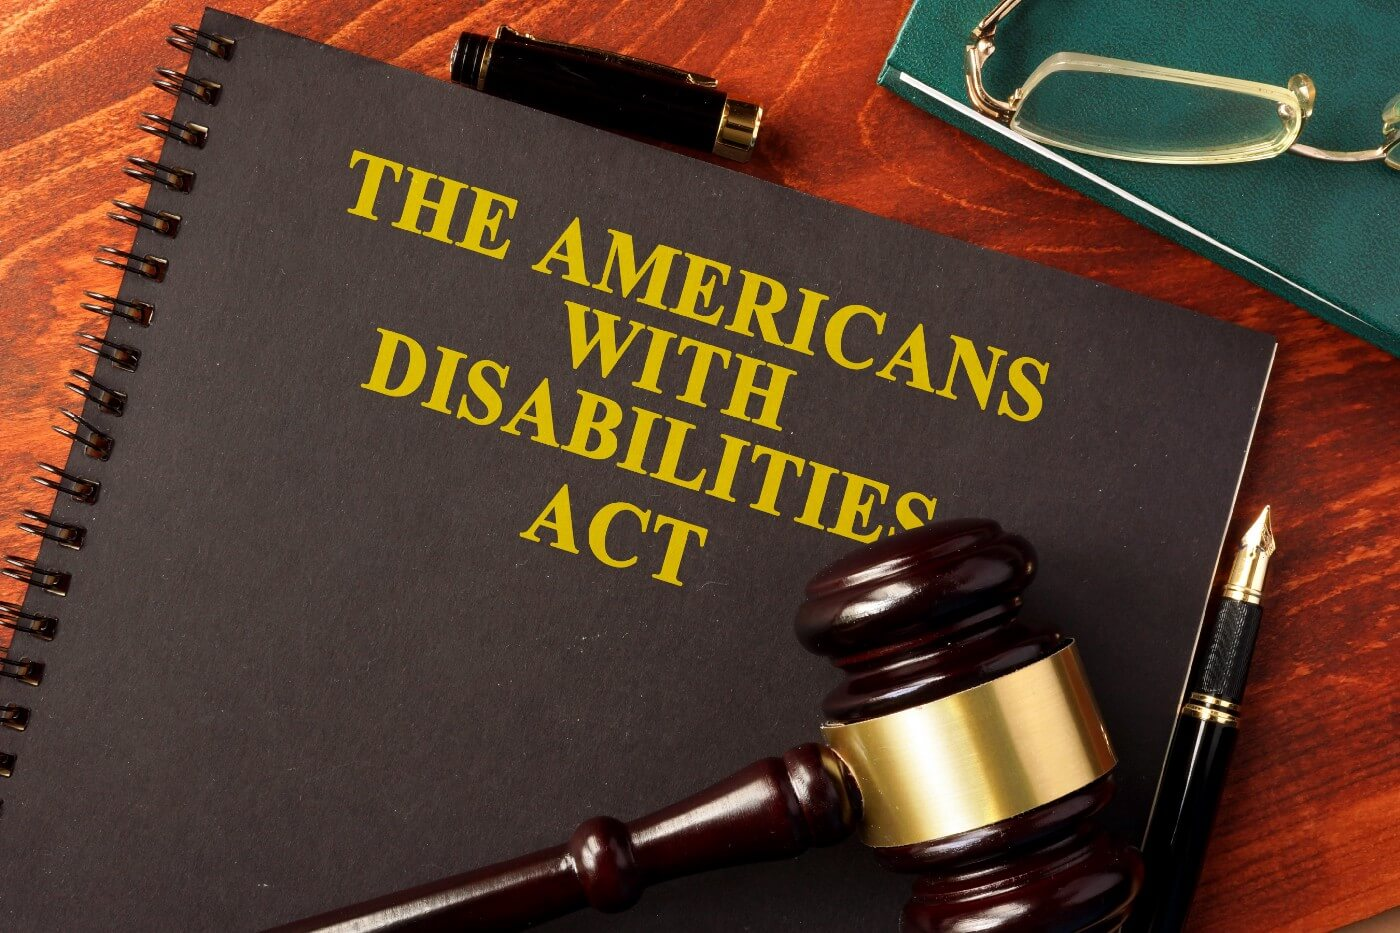 The Americans With Disabilities Act and a judge hammer